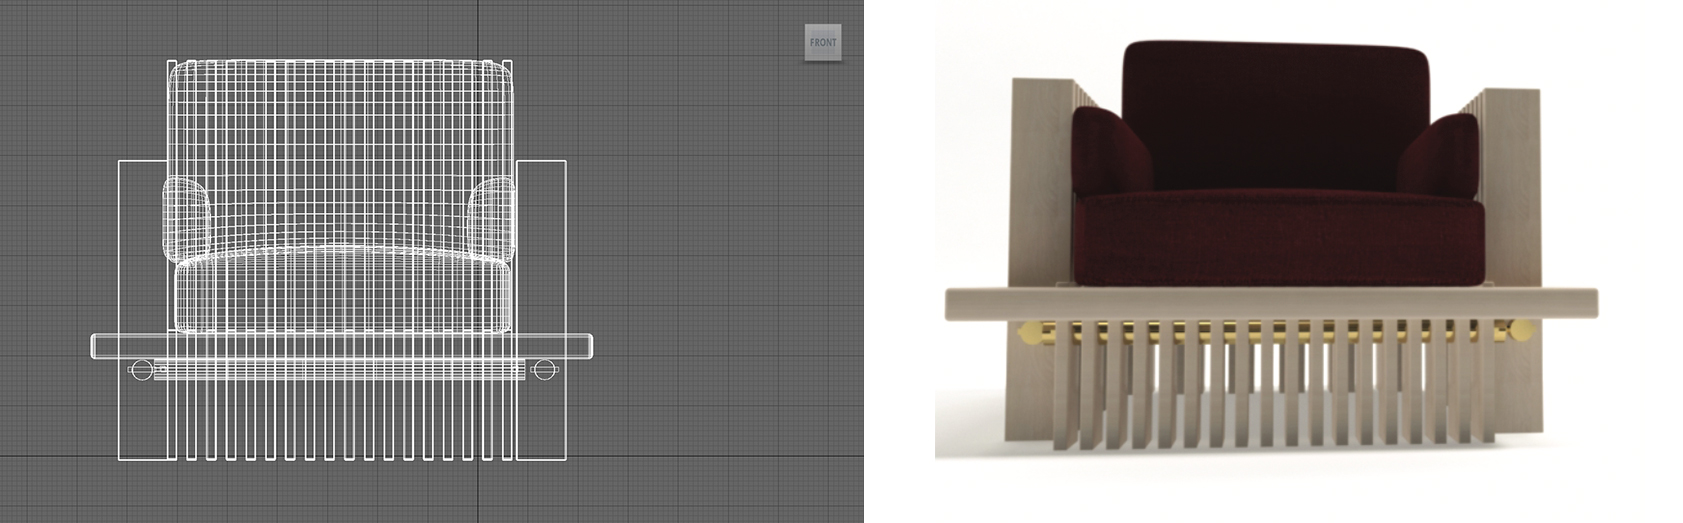 This image shows the design of a chair using Autodesk's 3DS Max.